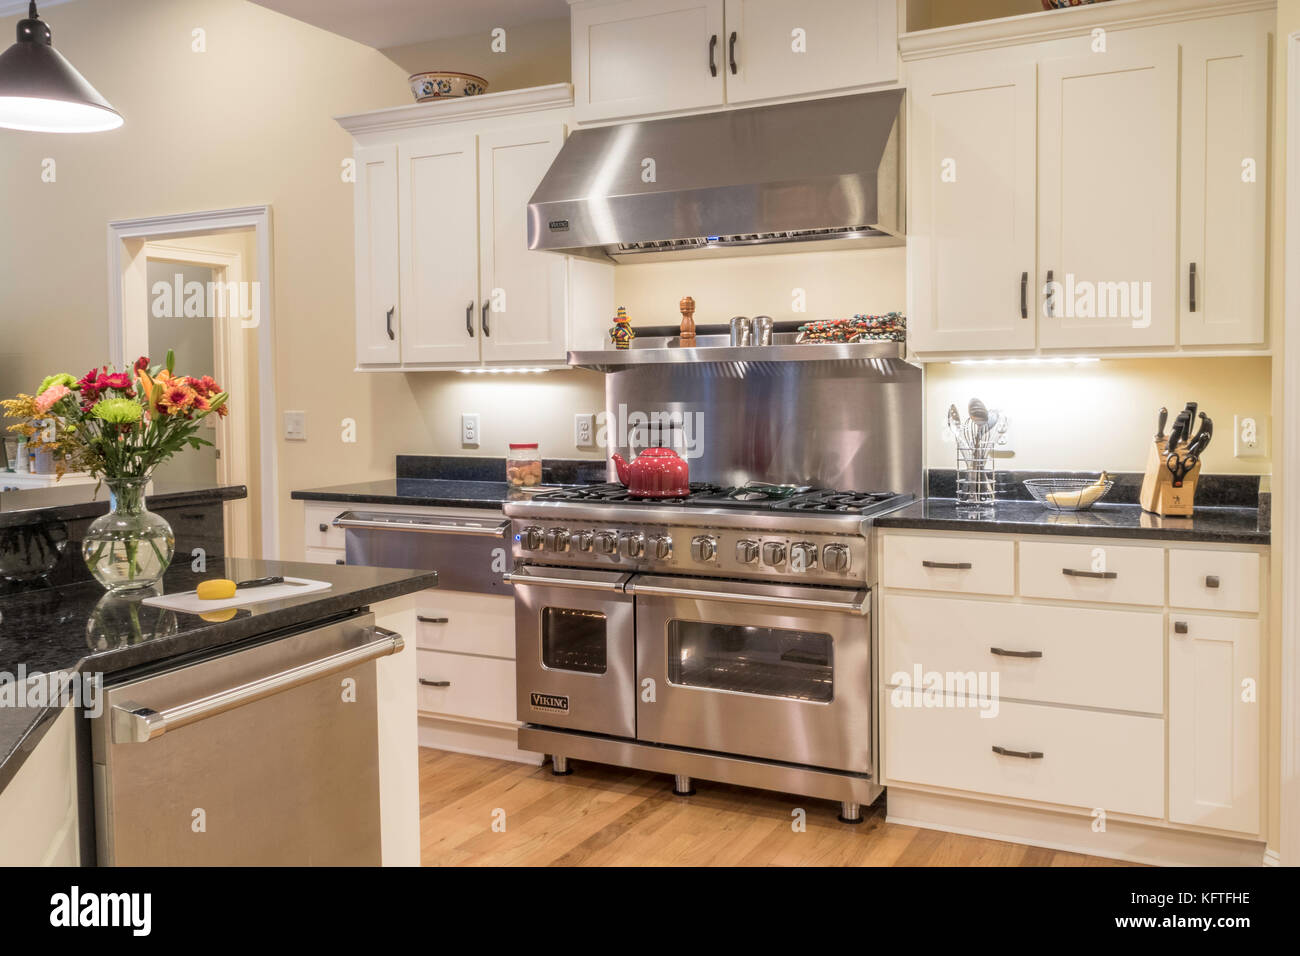 Upscale Residential Dining Kitchen, USA Stock Photo